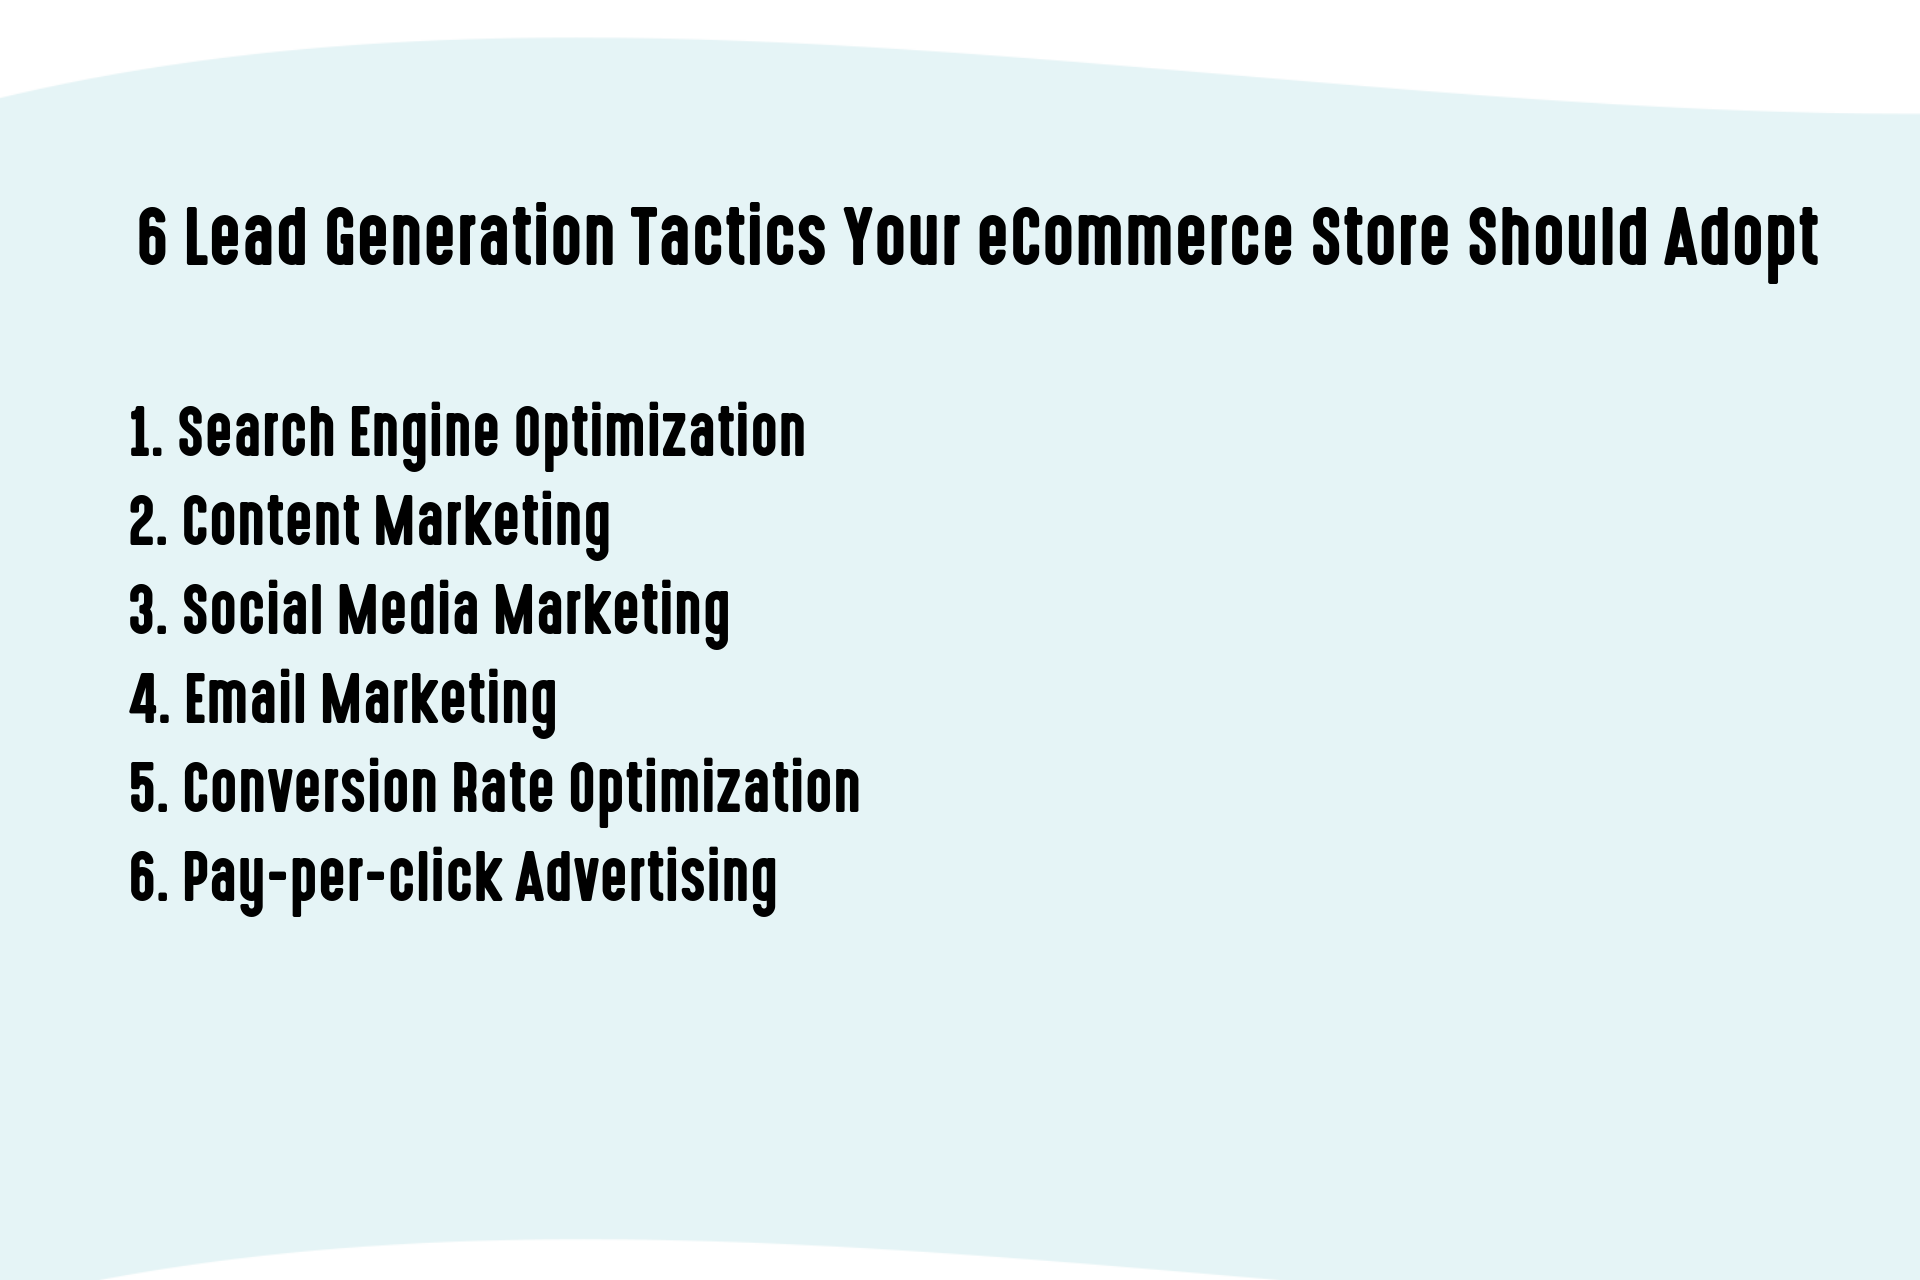 6 Lead Generation Tactics Your eCommerce Store Should Adopt